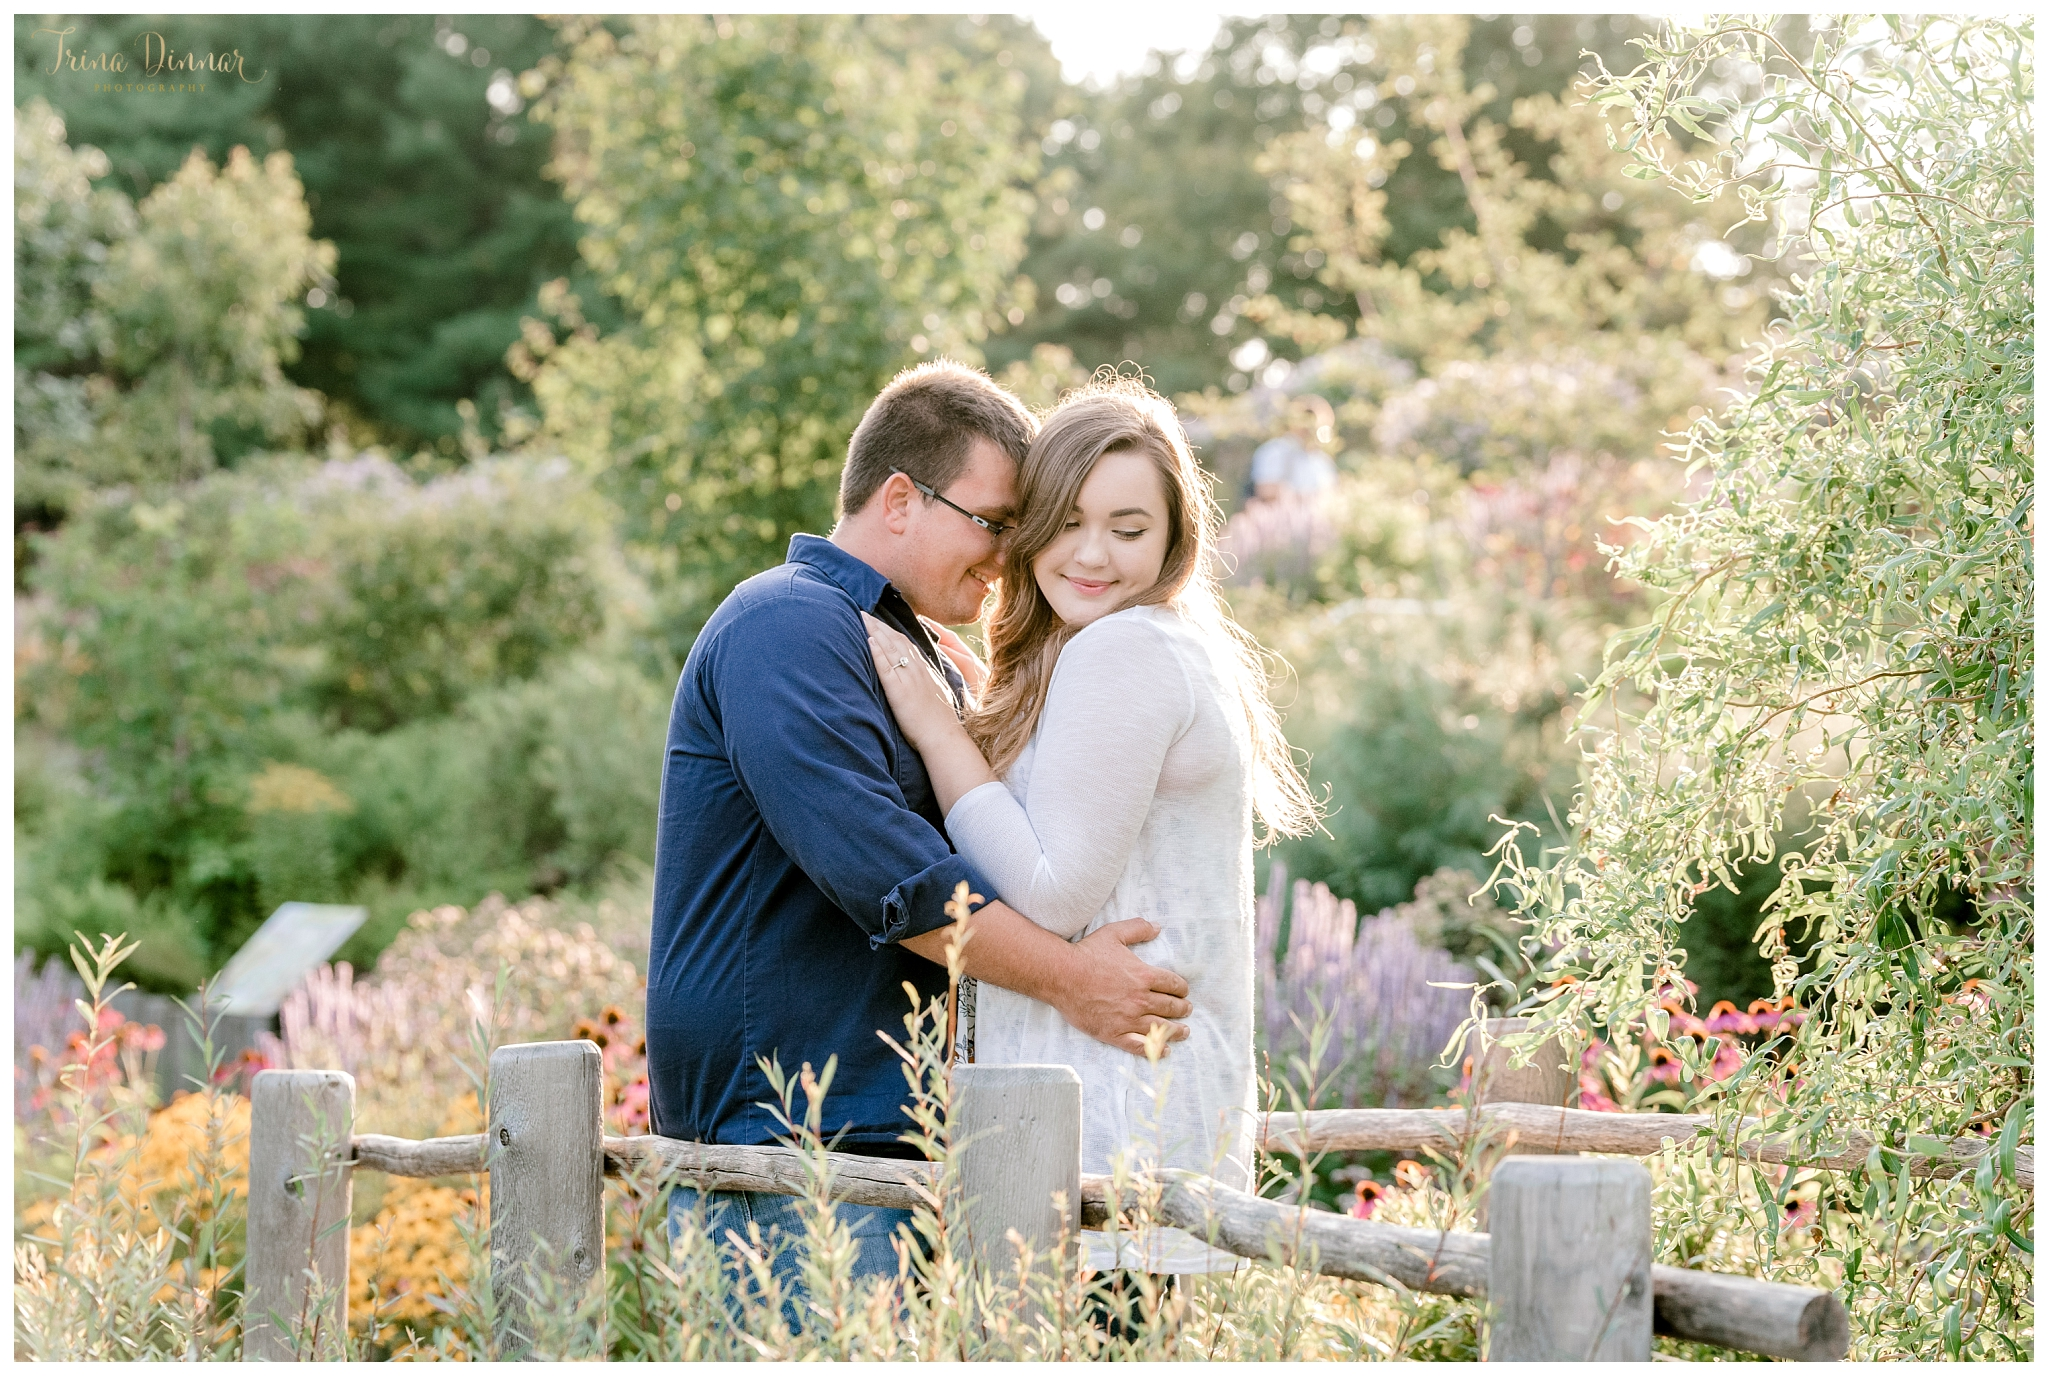 Maine Engagement Session in a Flower Garden at sunset